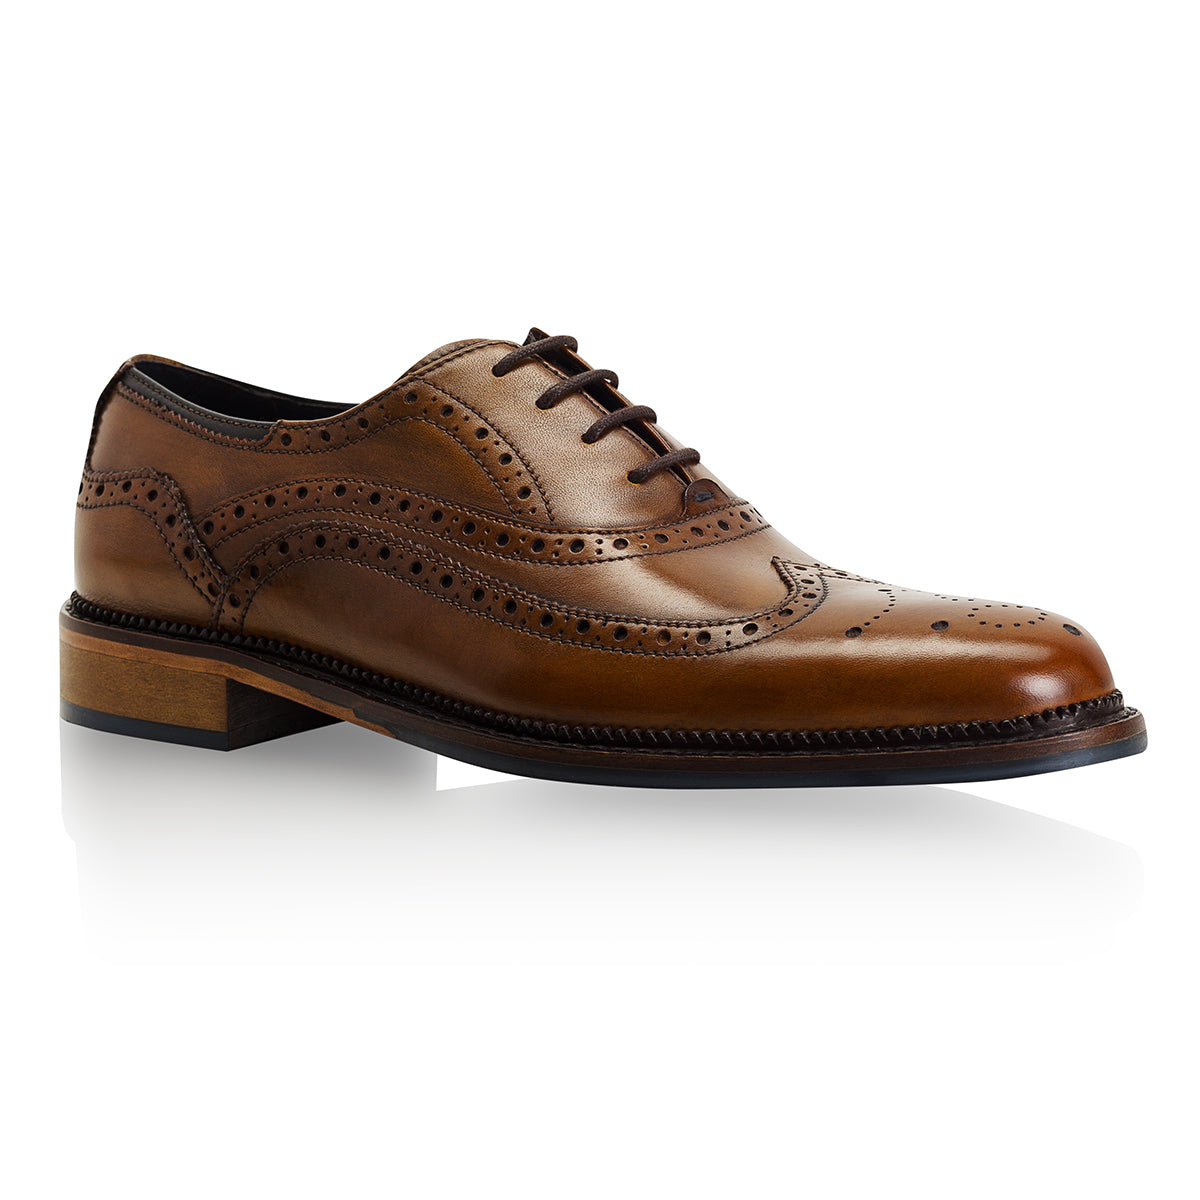 toe cap Chatworth Tan Brogue Shoe by Goodwin Smith